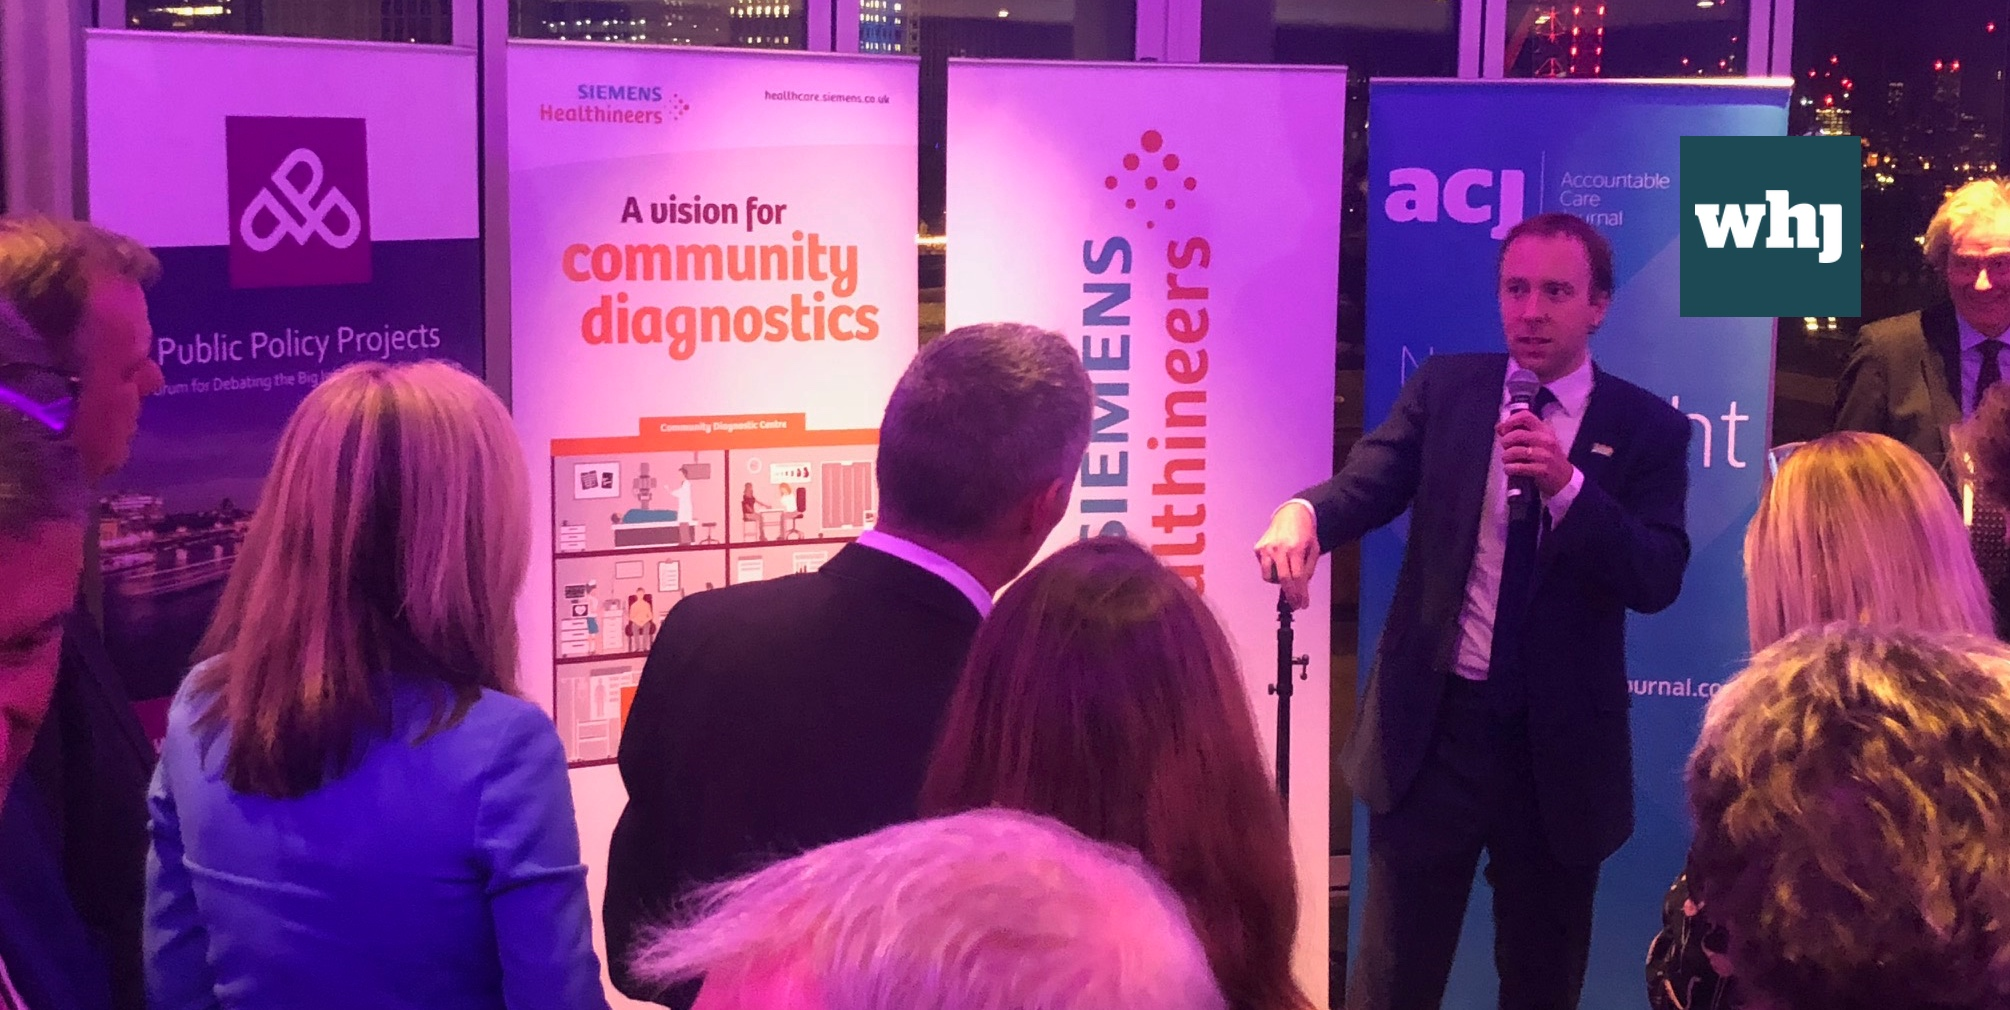 Secretary of State outlines disruptive tech vision for health and care